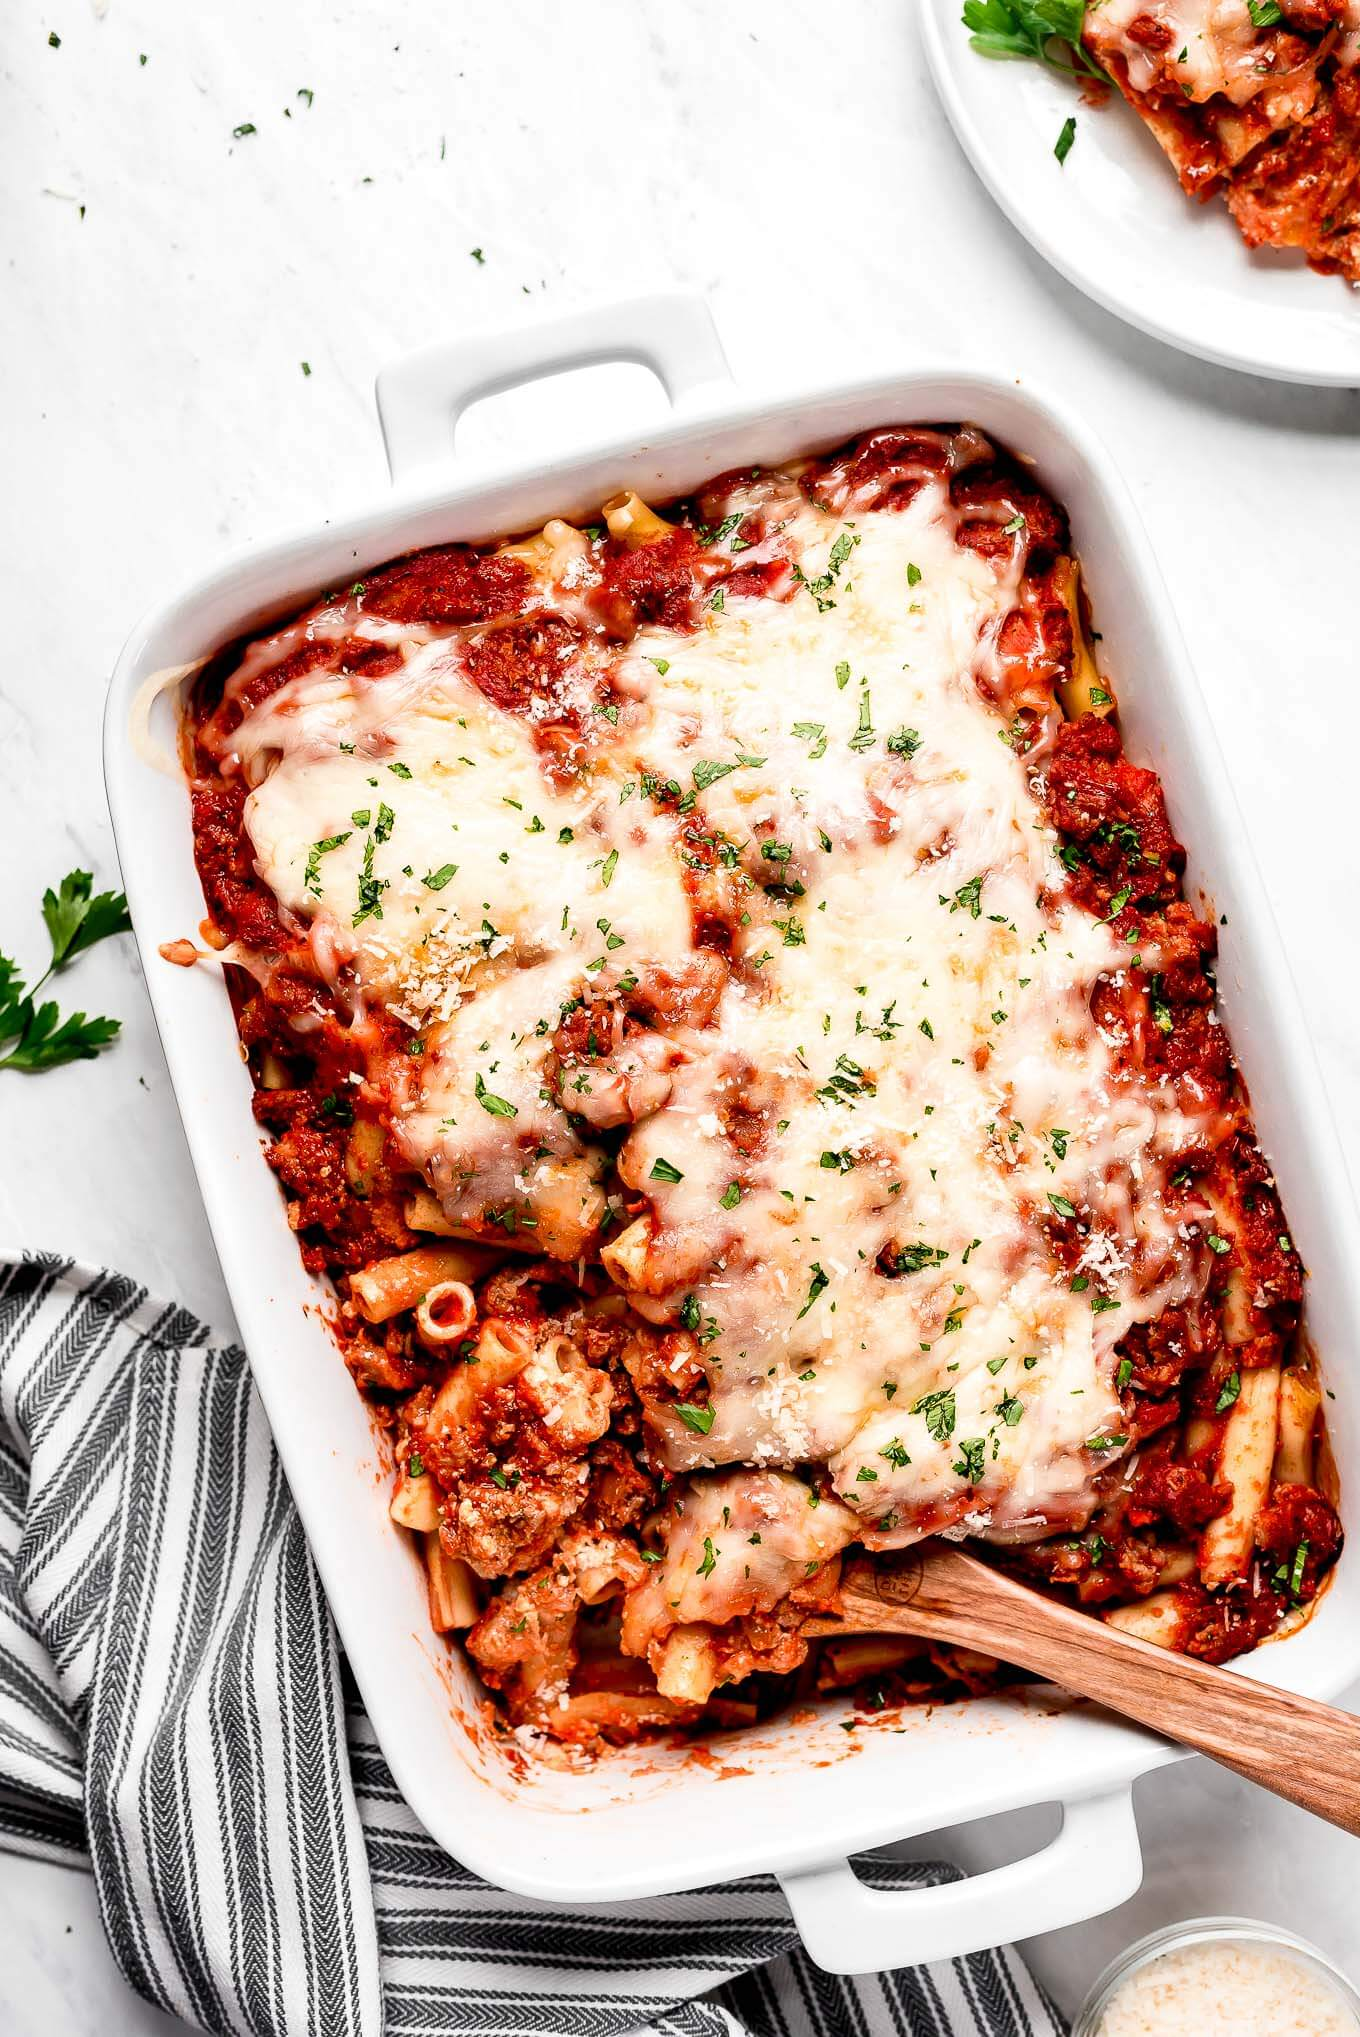 A white casserole dish of Baked Ziti with Sweet Italian Sausage with a wooden spoon in it.